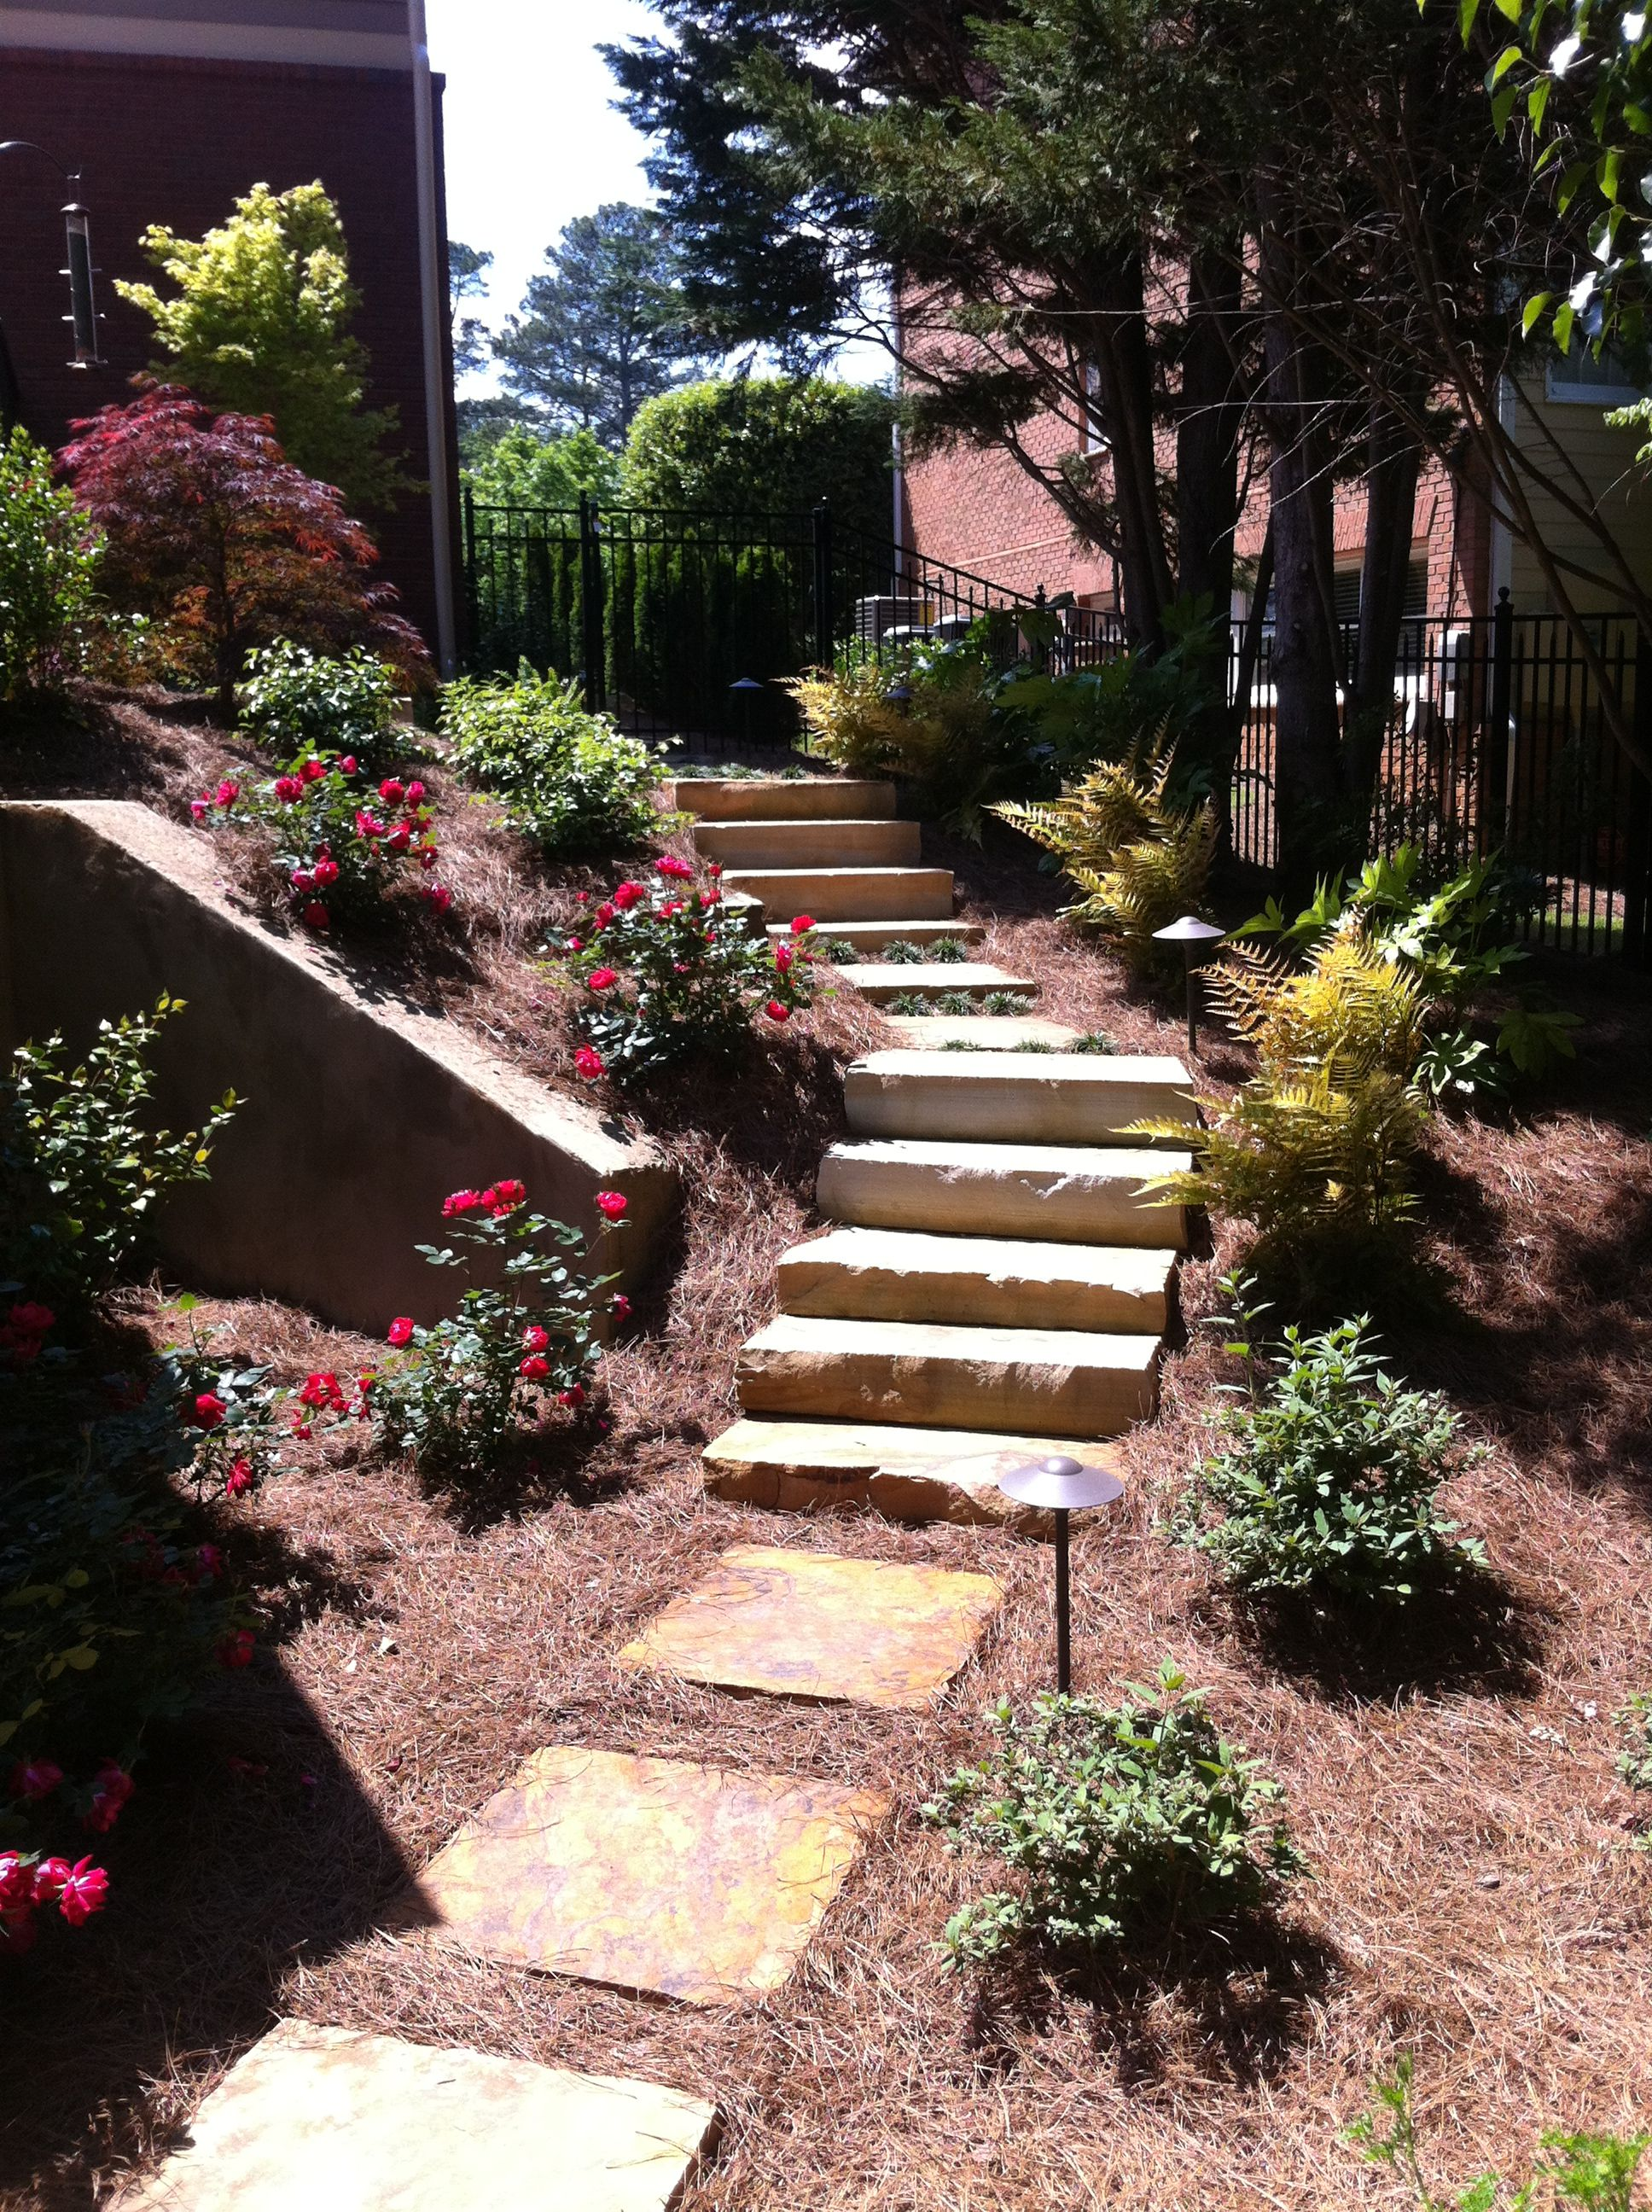 Stone staircase and landscaping.